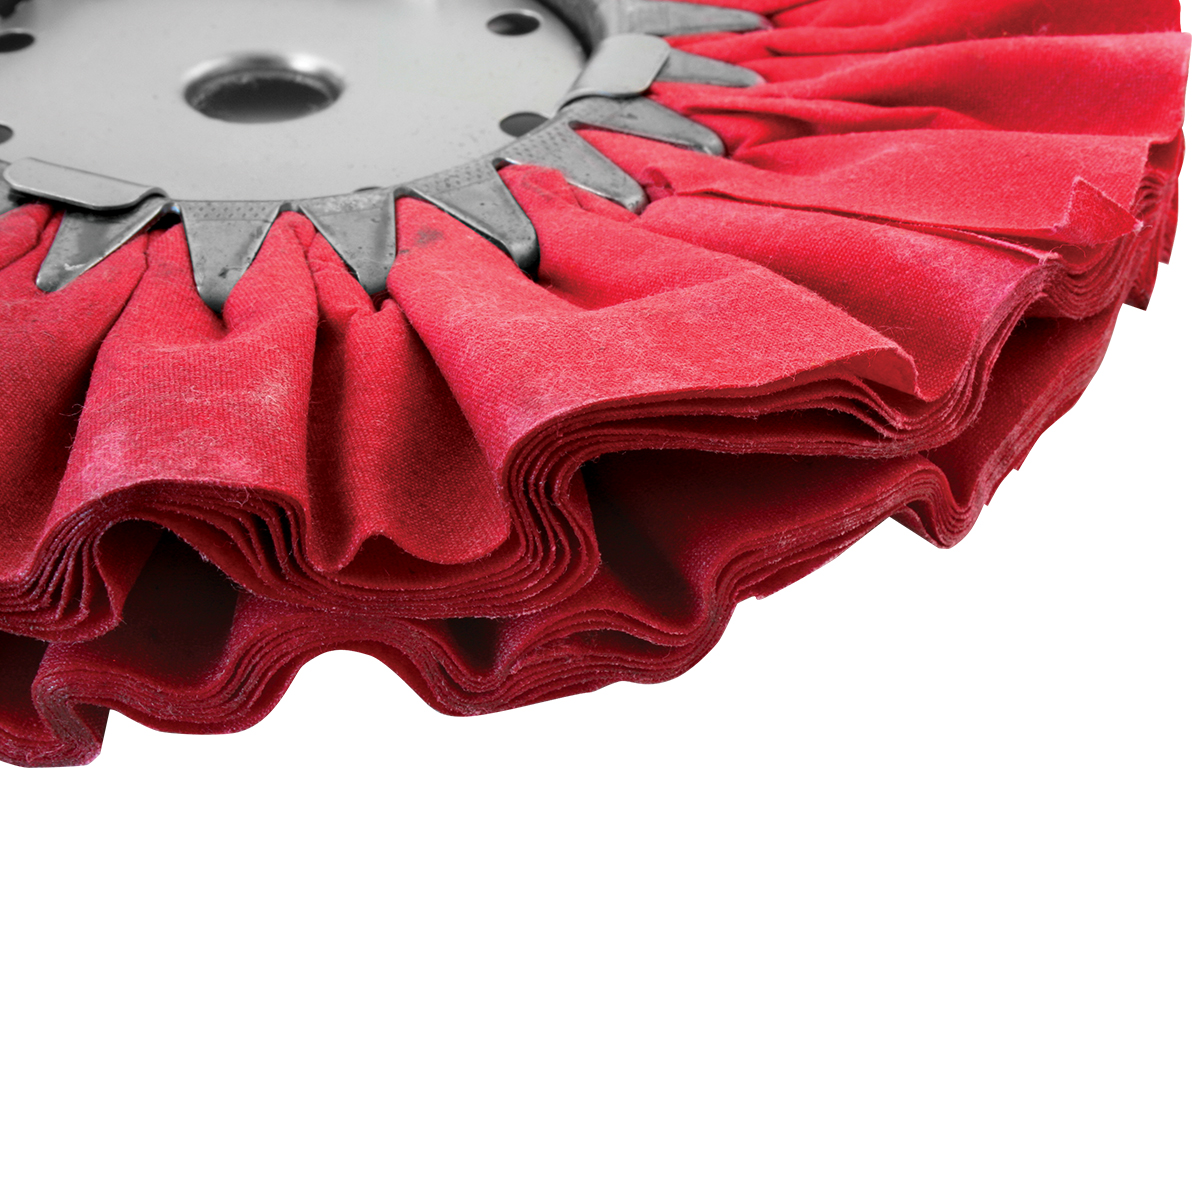 98151 Red Treated Airway Buffing Wheels